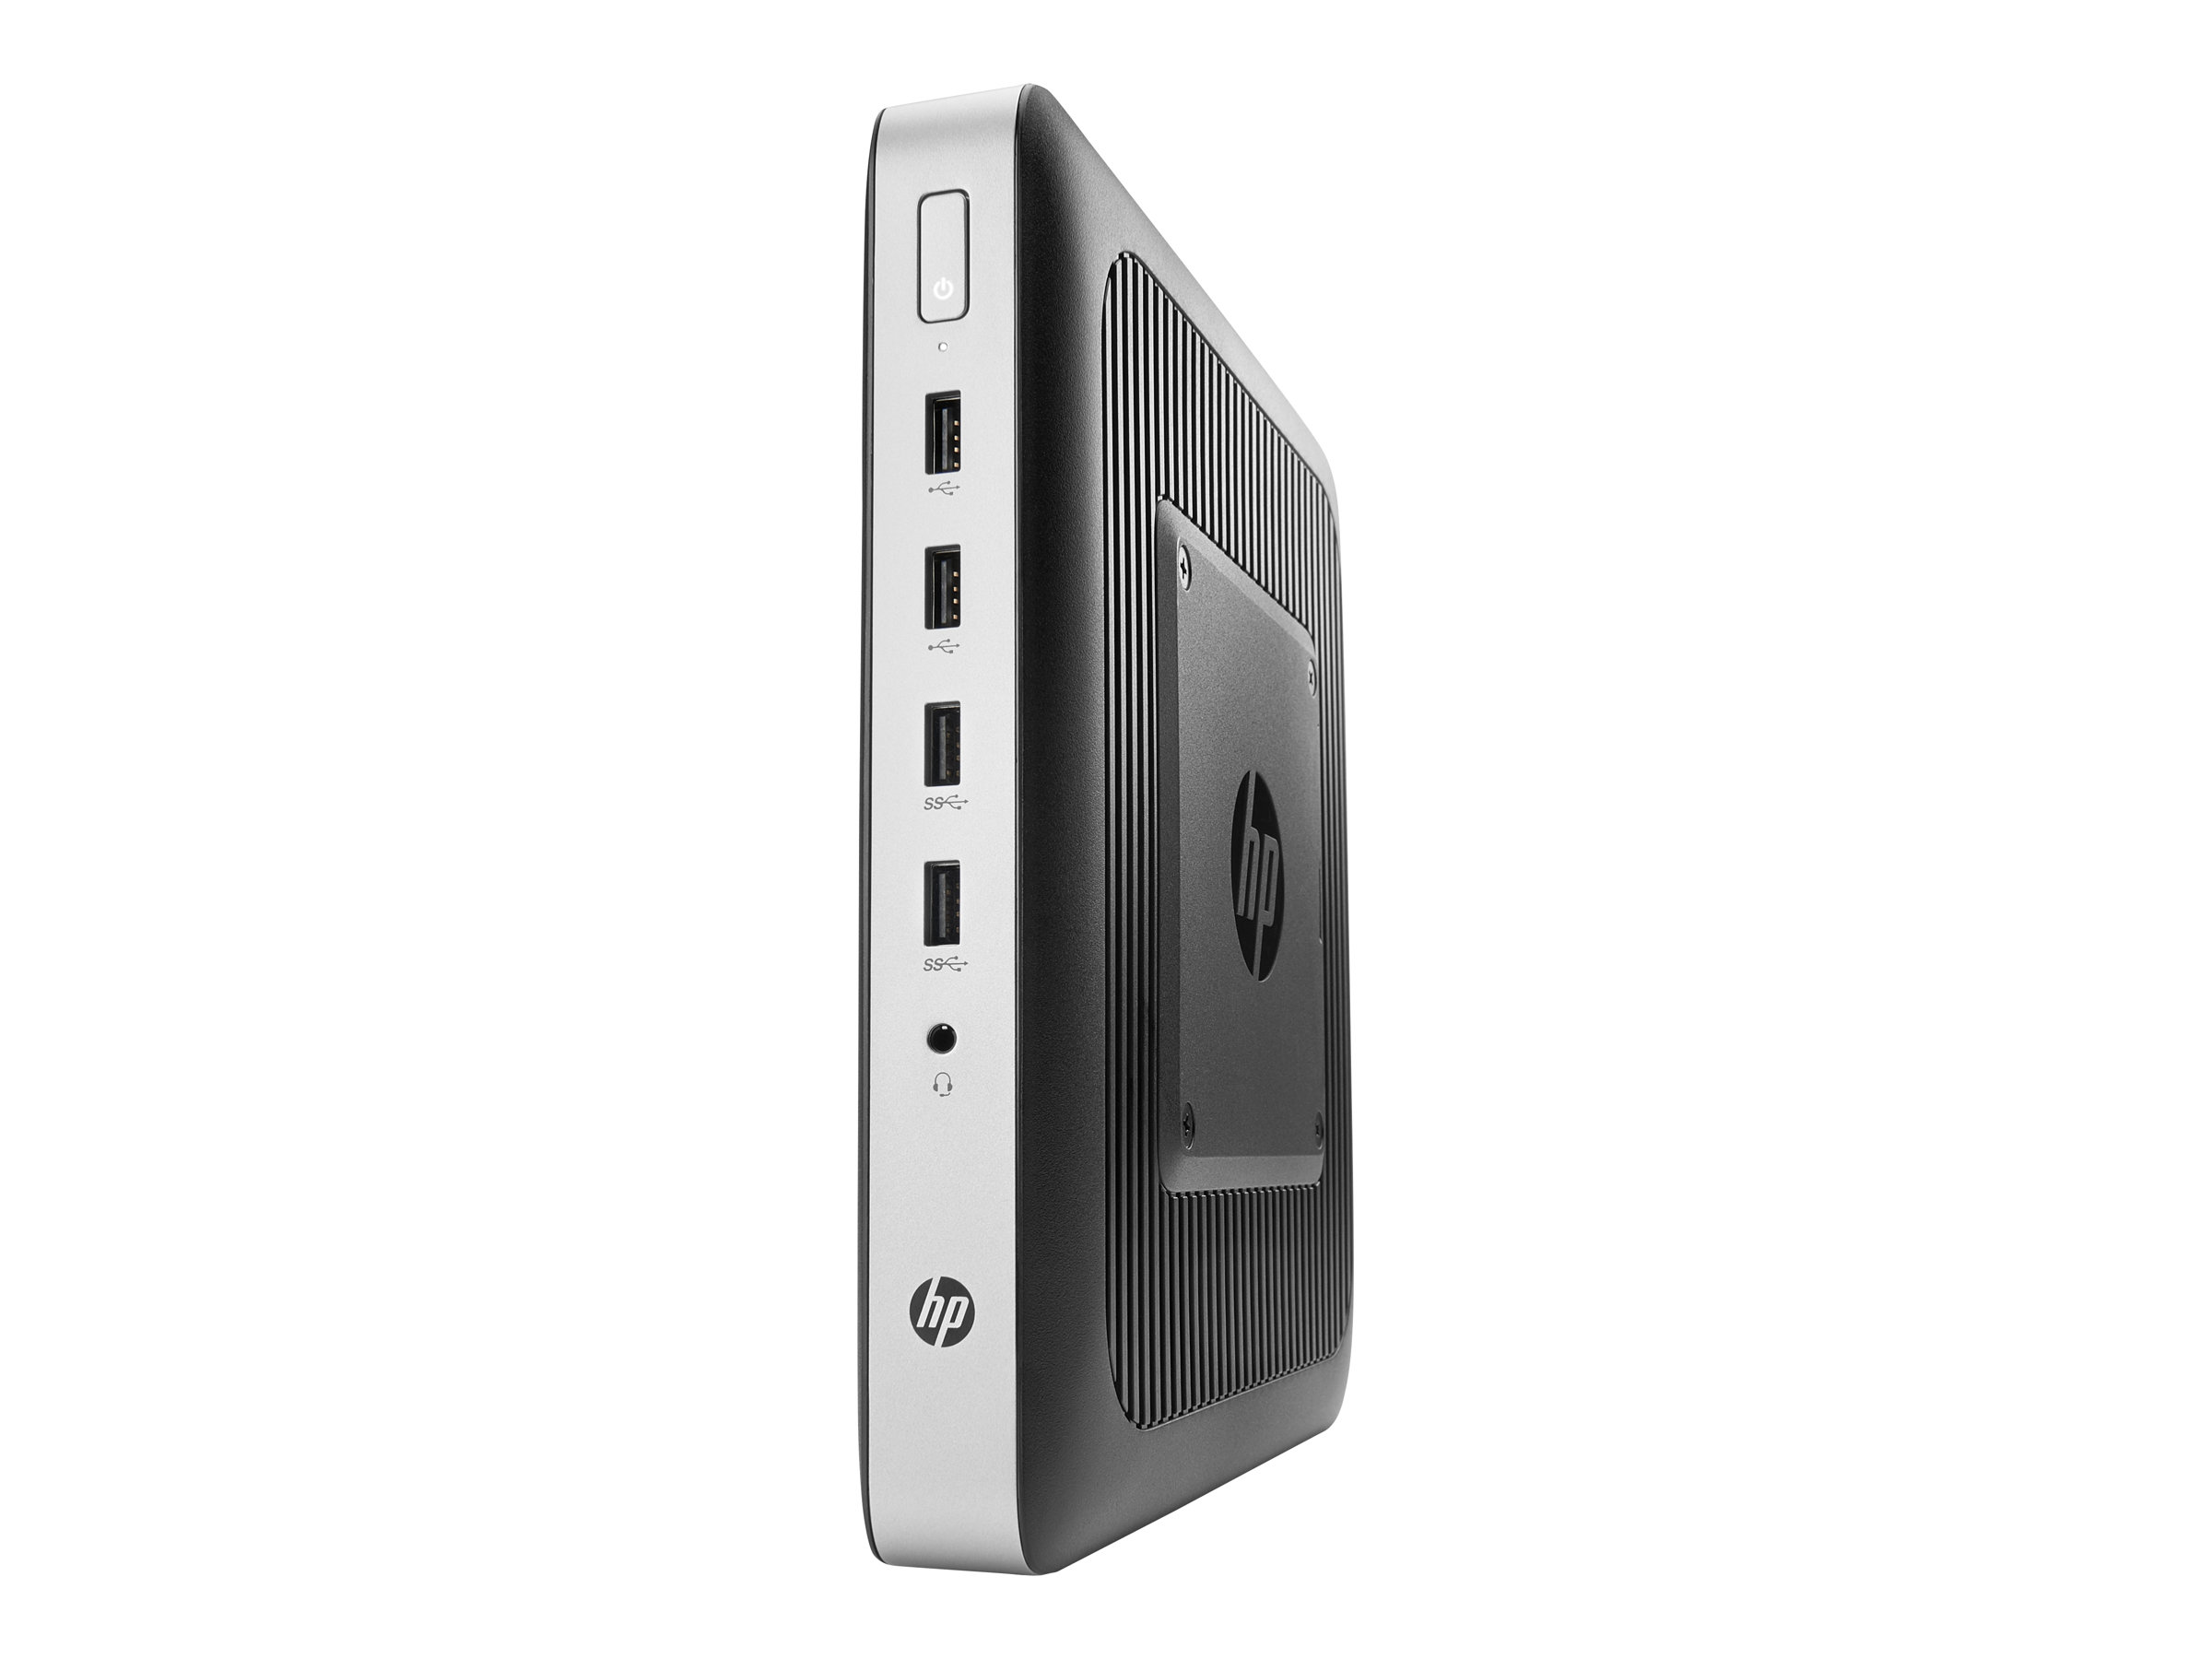 HP t630 - tower - GX-420GI 2 GHz - 8 GB - flash 128 GB